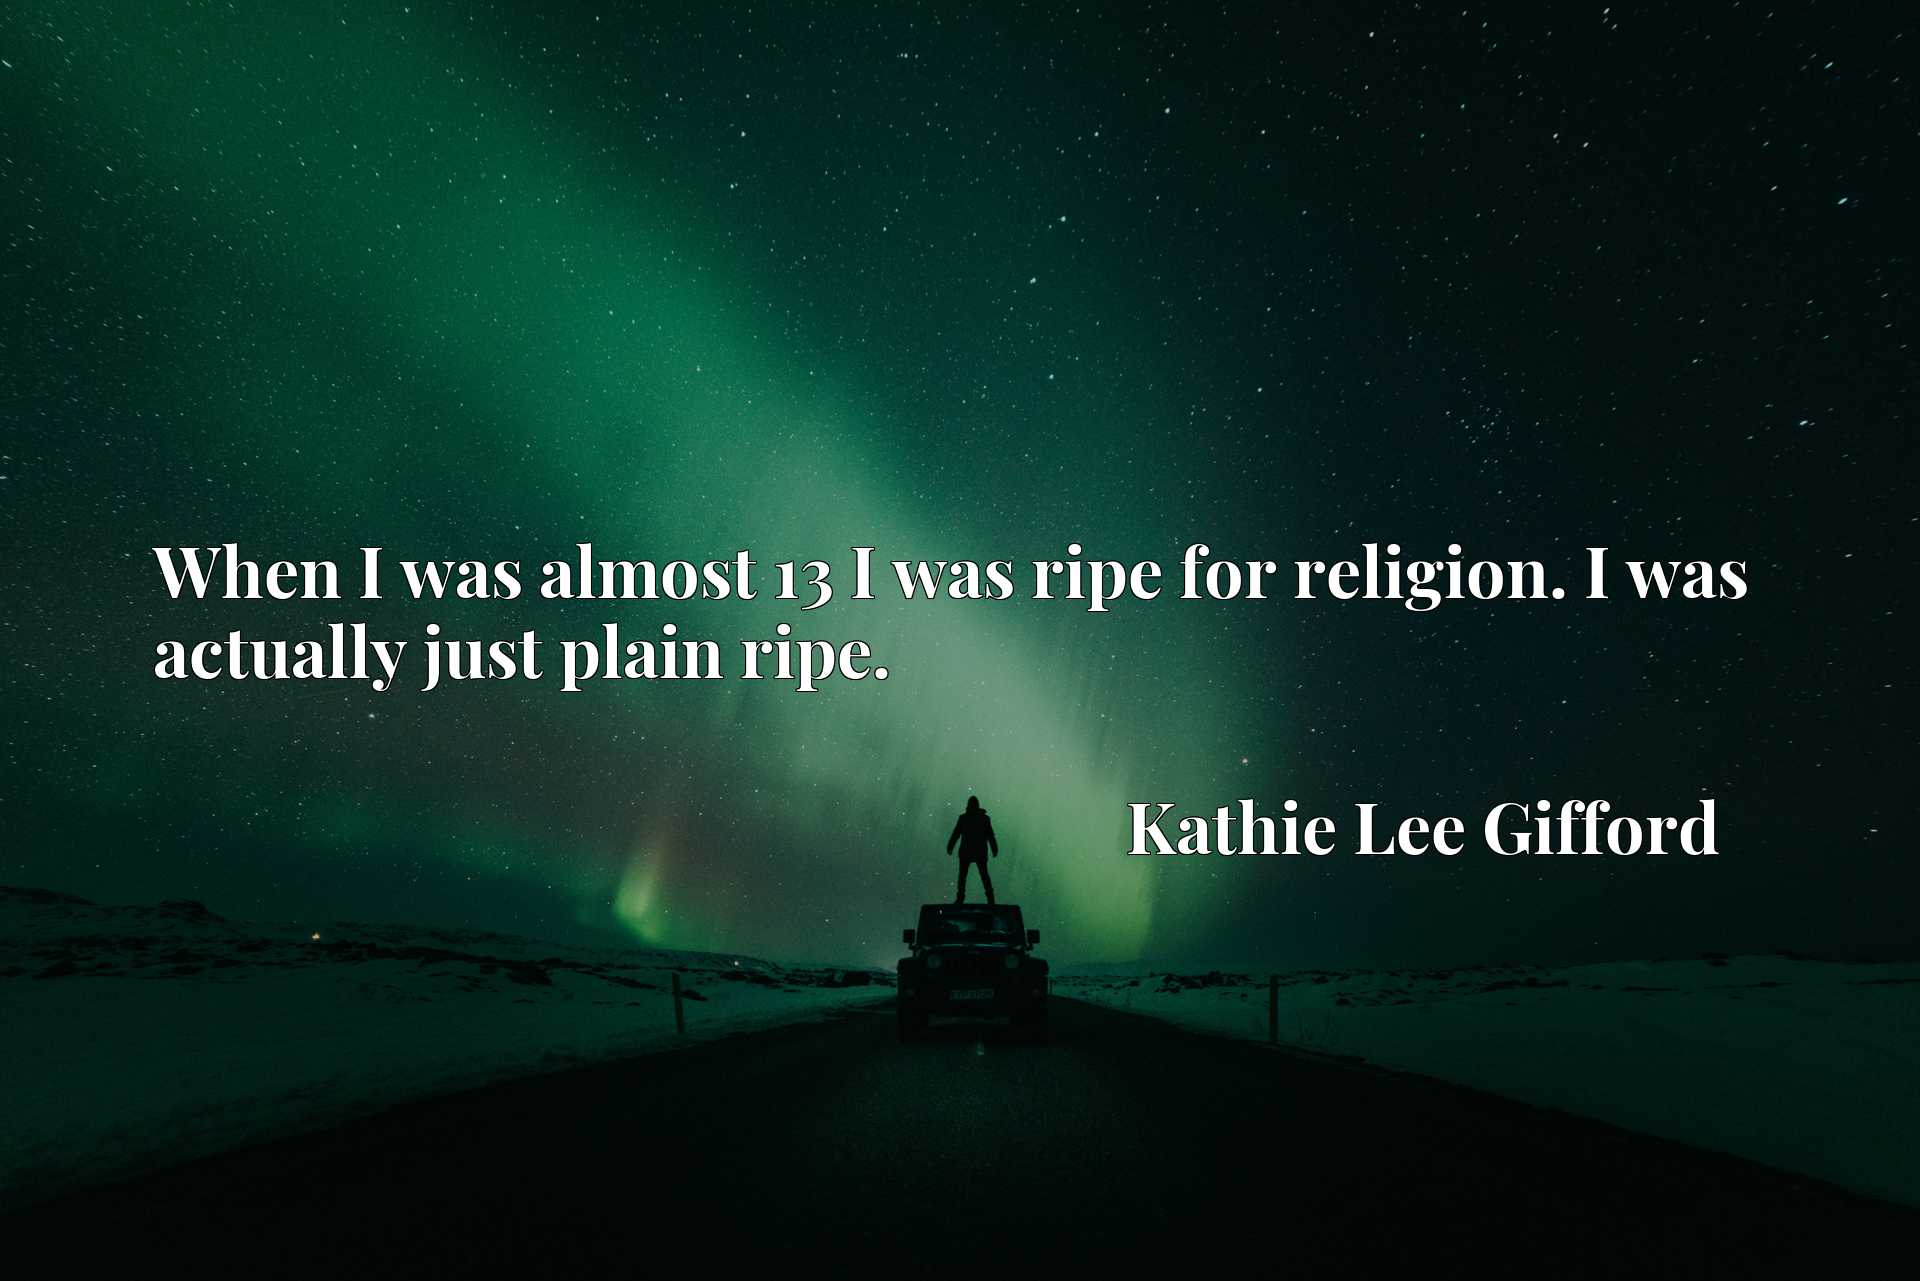 When I was almost 13 I was ripe for religion. I was actually just plain ripe.